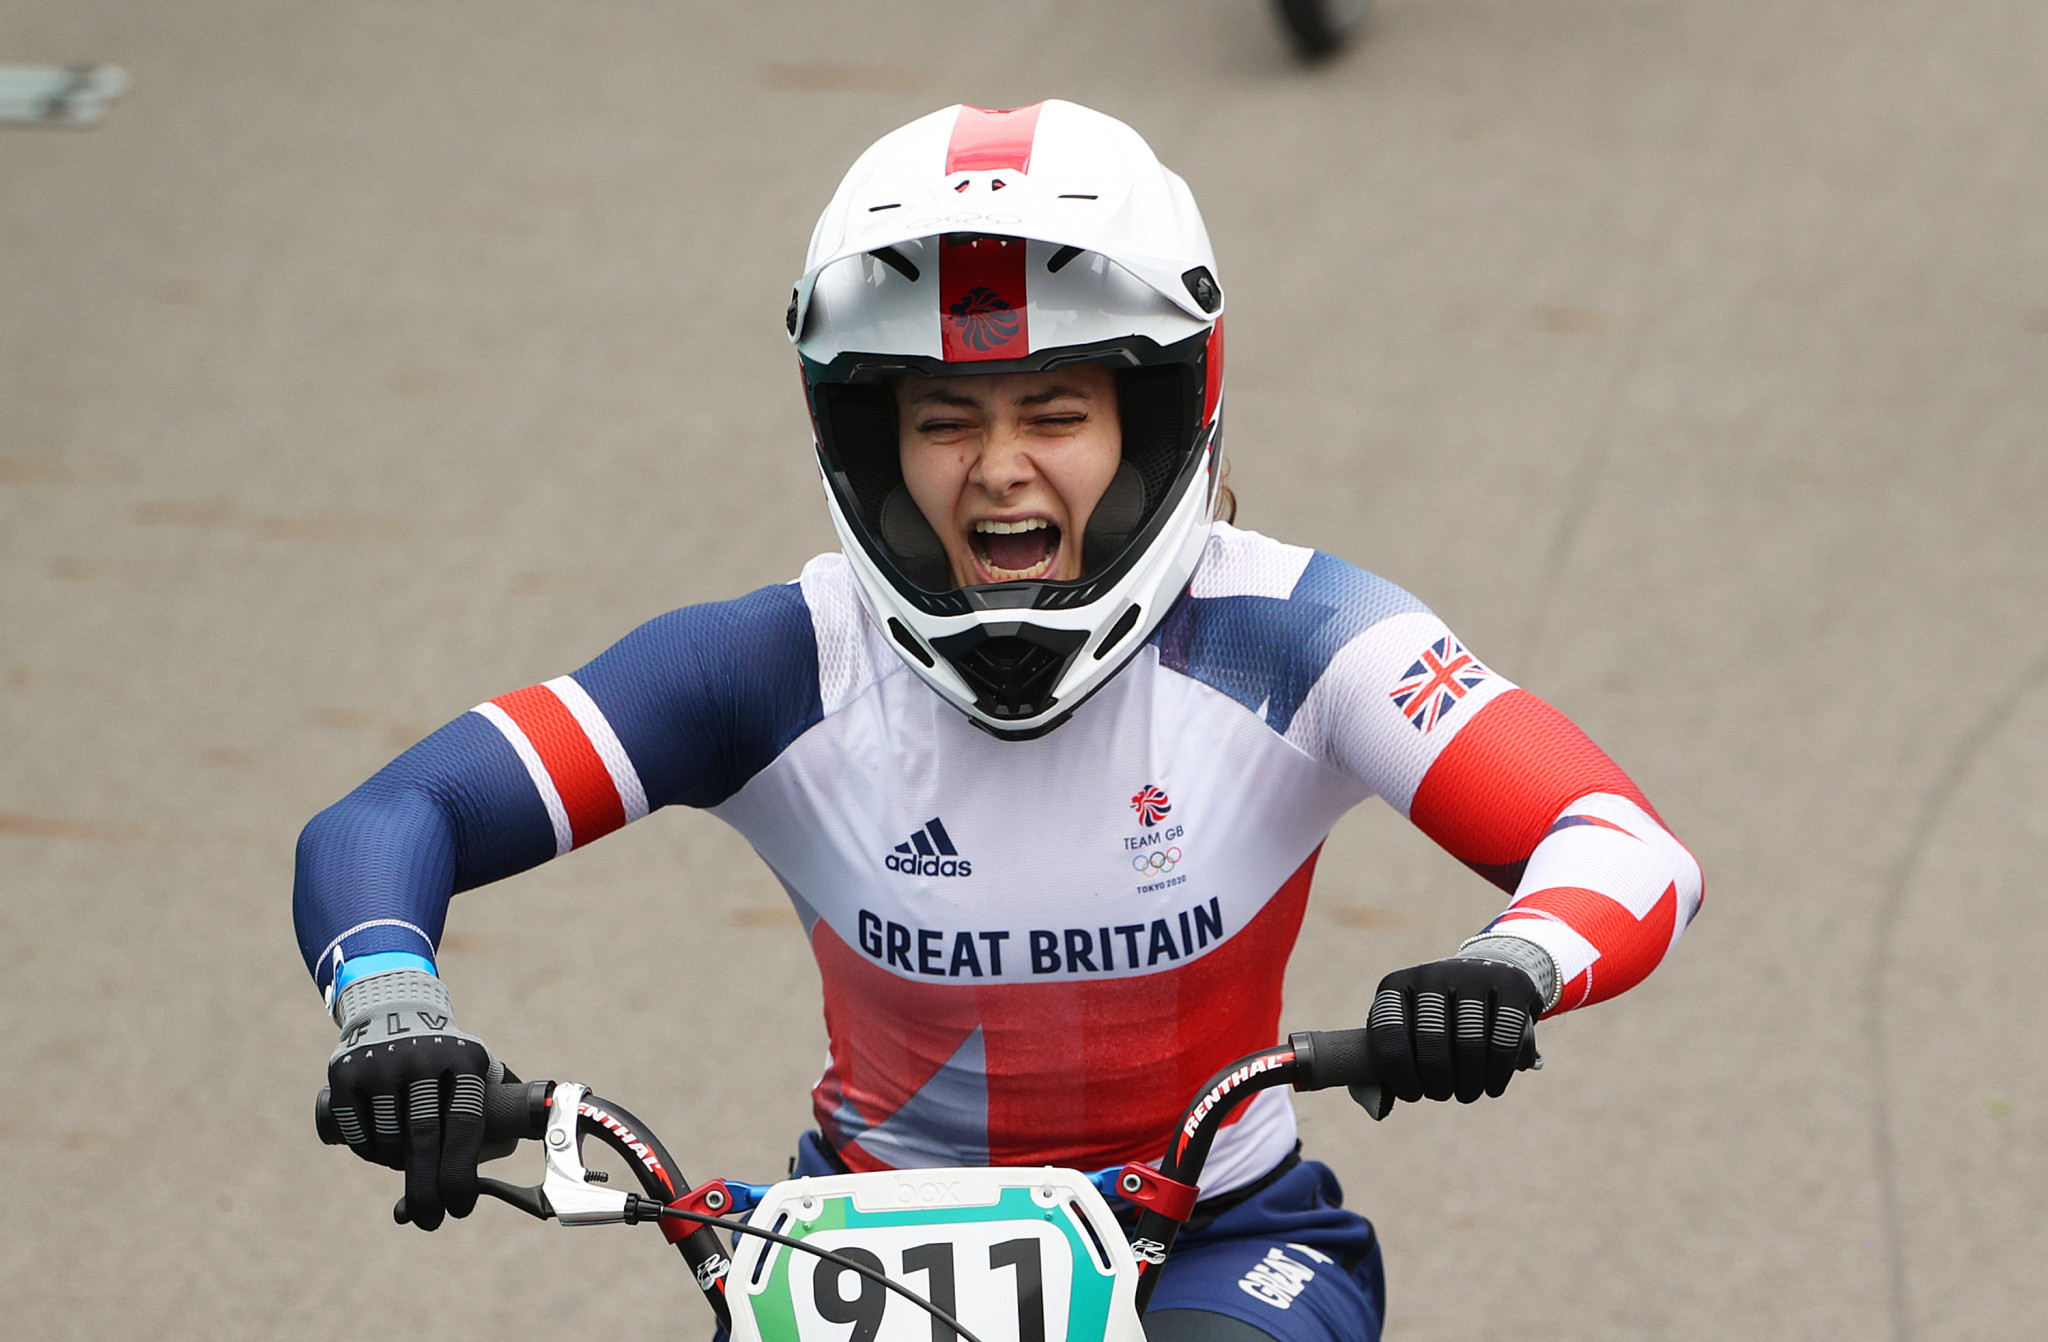 BMX racing Olympic gold medallist and world champion Bethany Shriever is among the athletes to have benefitted from SportsAid funding ©Getty Images